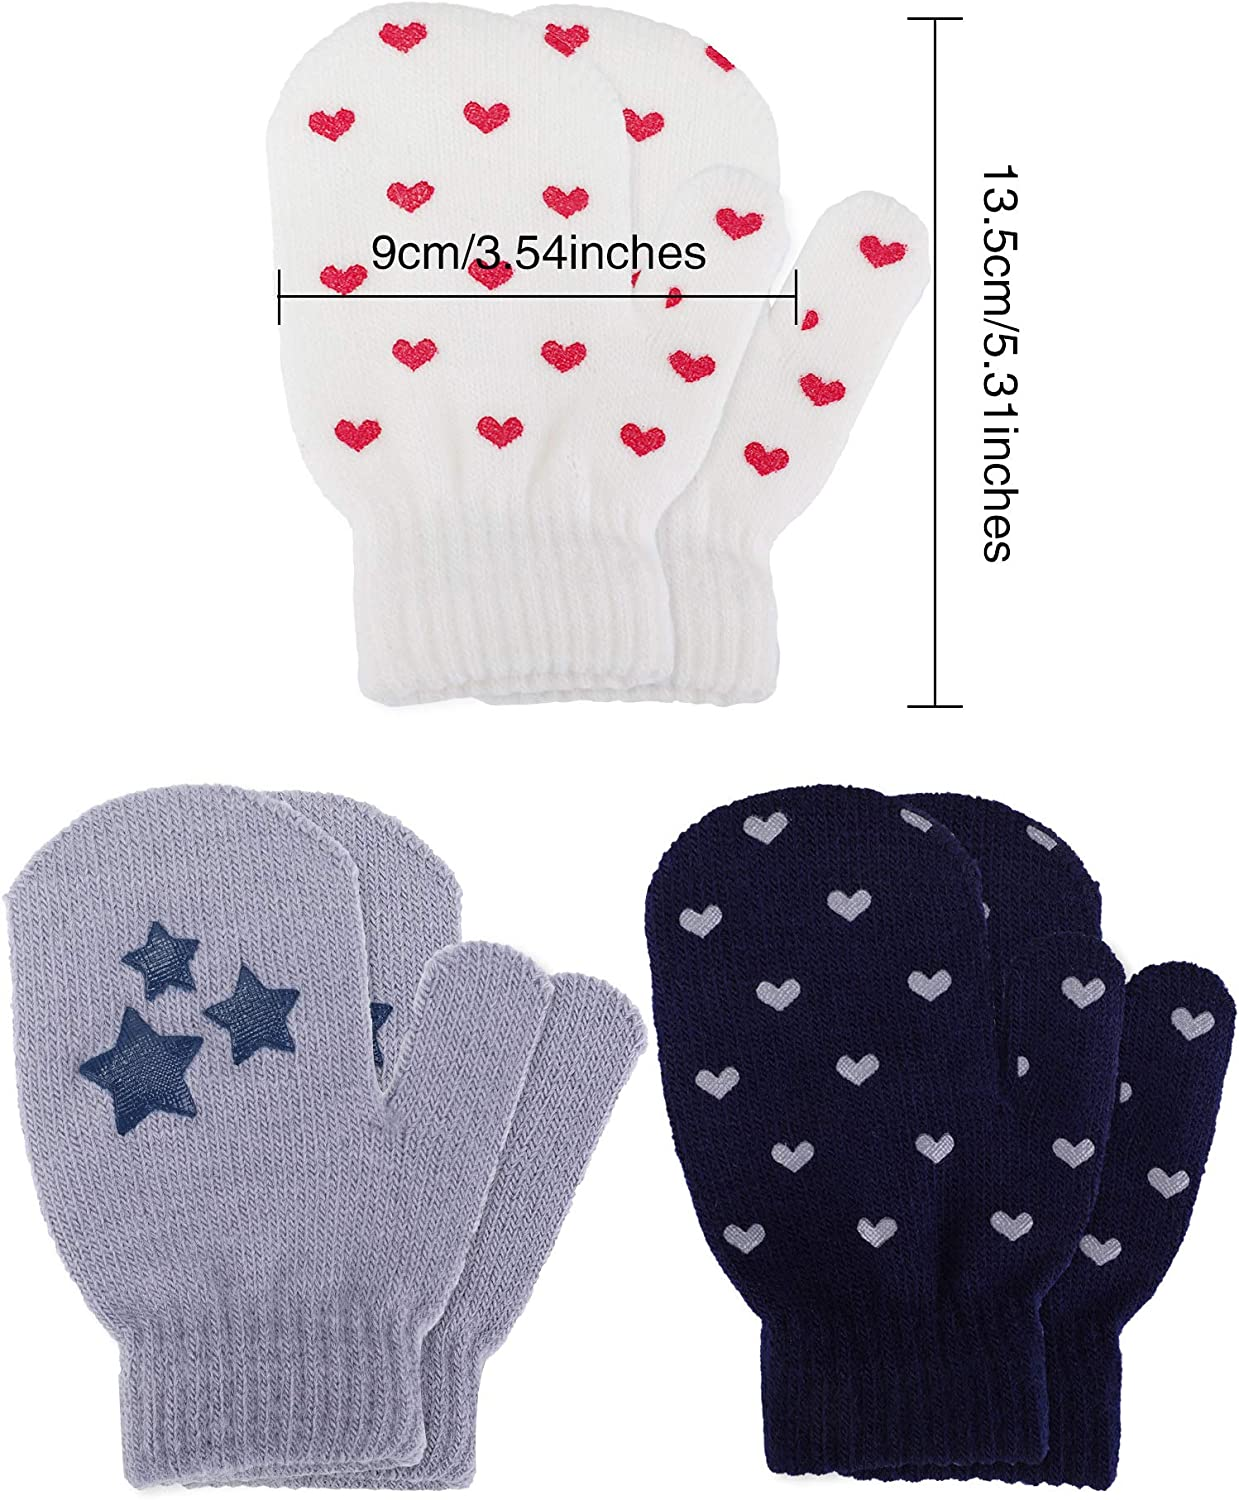 Satinior 3 Pairs Toddler Magic Stretch Mittens Little Girls Soft Knit Mitten Baby Boys Winter Knitted Gloves